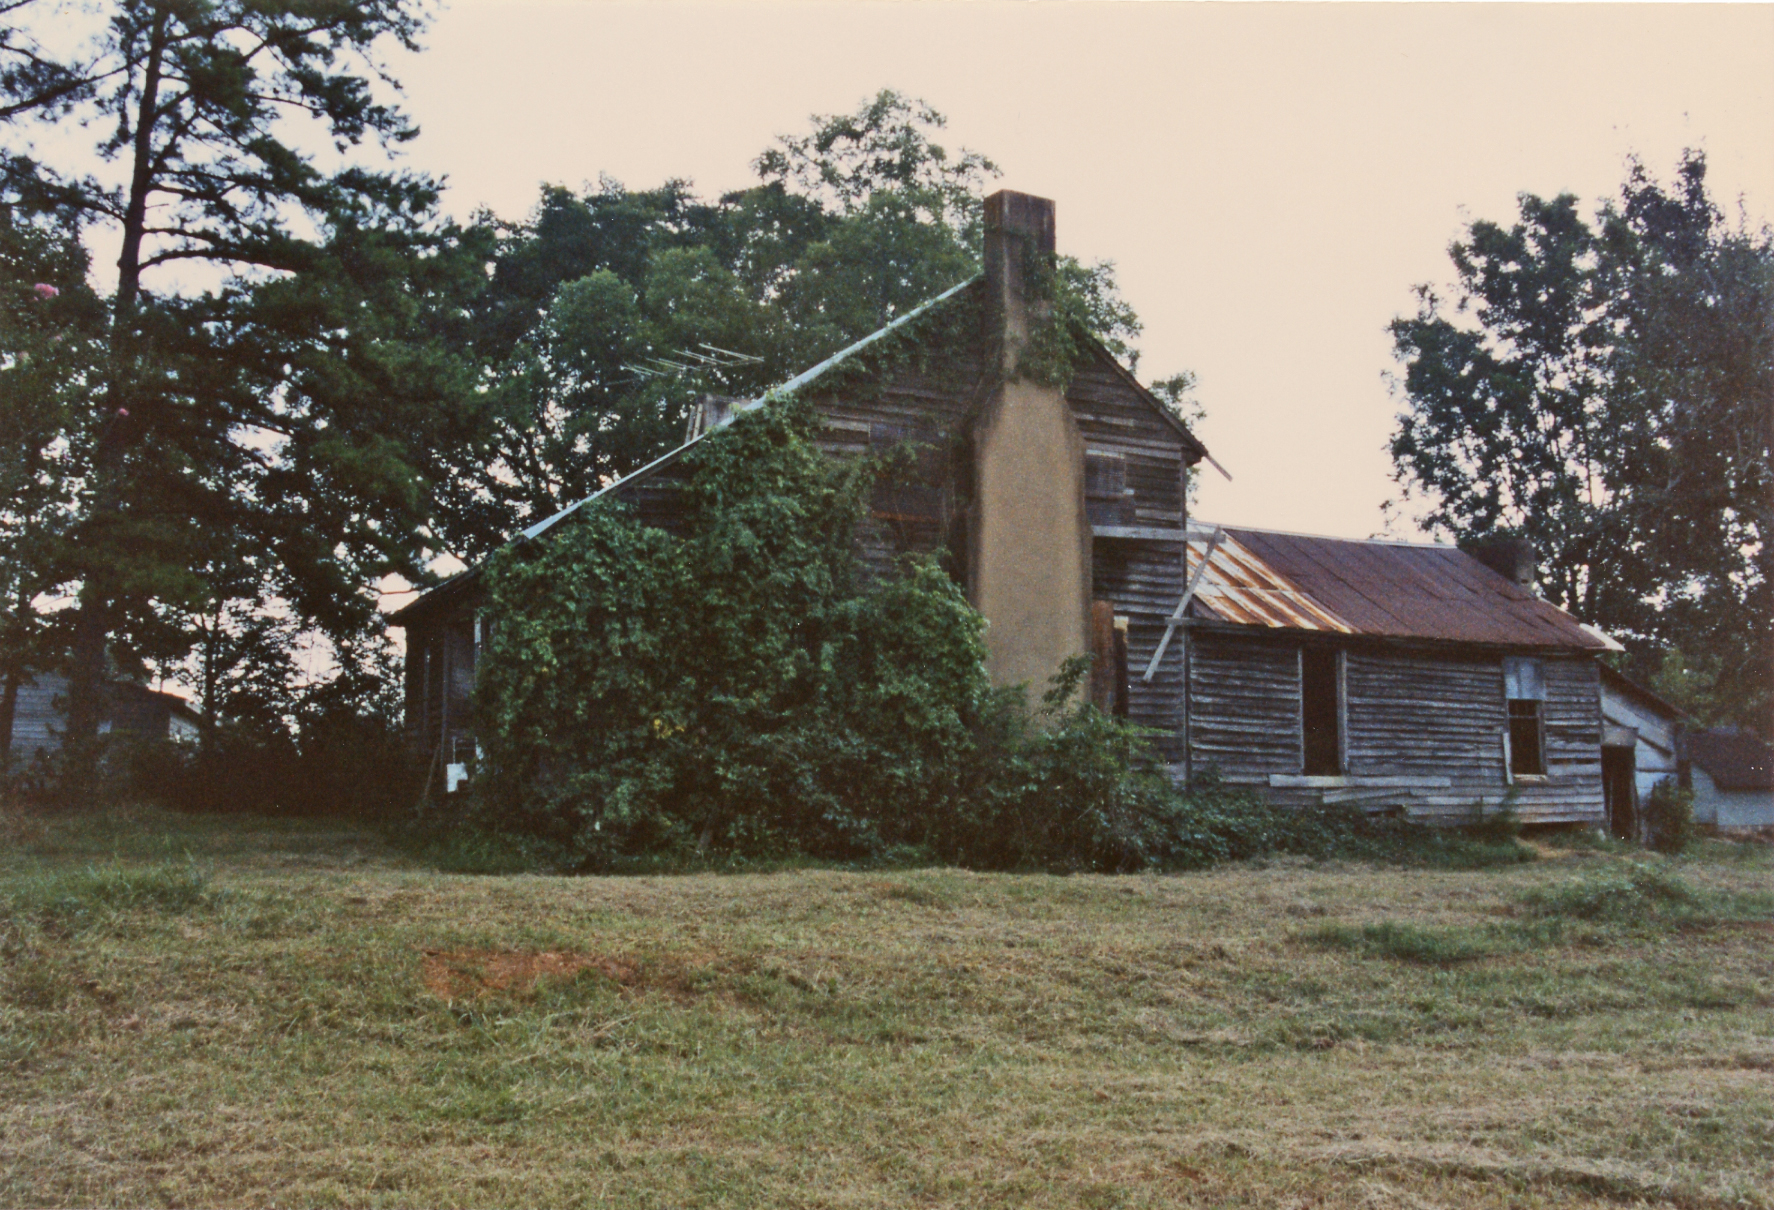 burdette house 1996